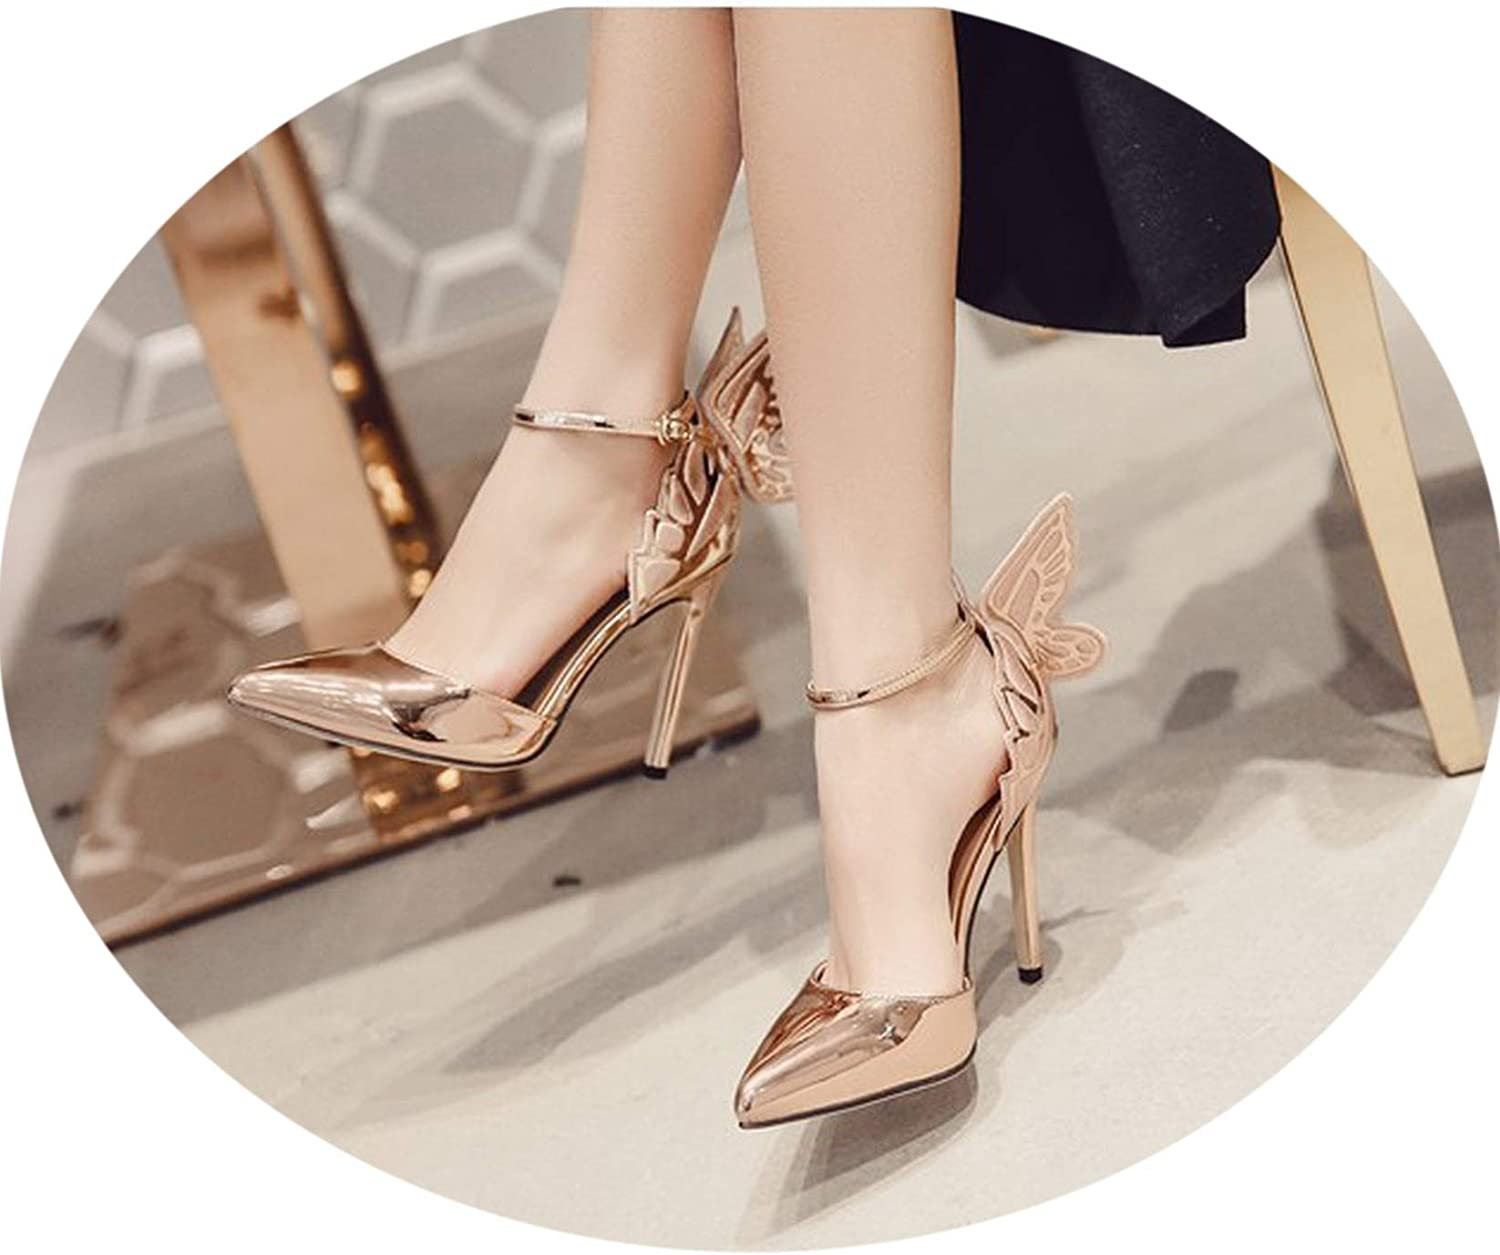 Pointed Toe Pumps Wing 3D Butterfly Embroidery High Heel Ankle Strap Soes Metallic Stiletto shoes